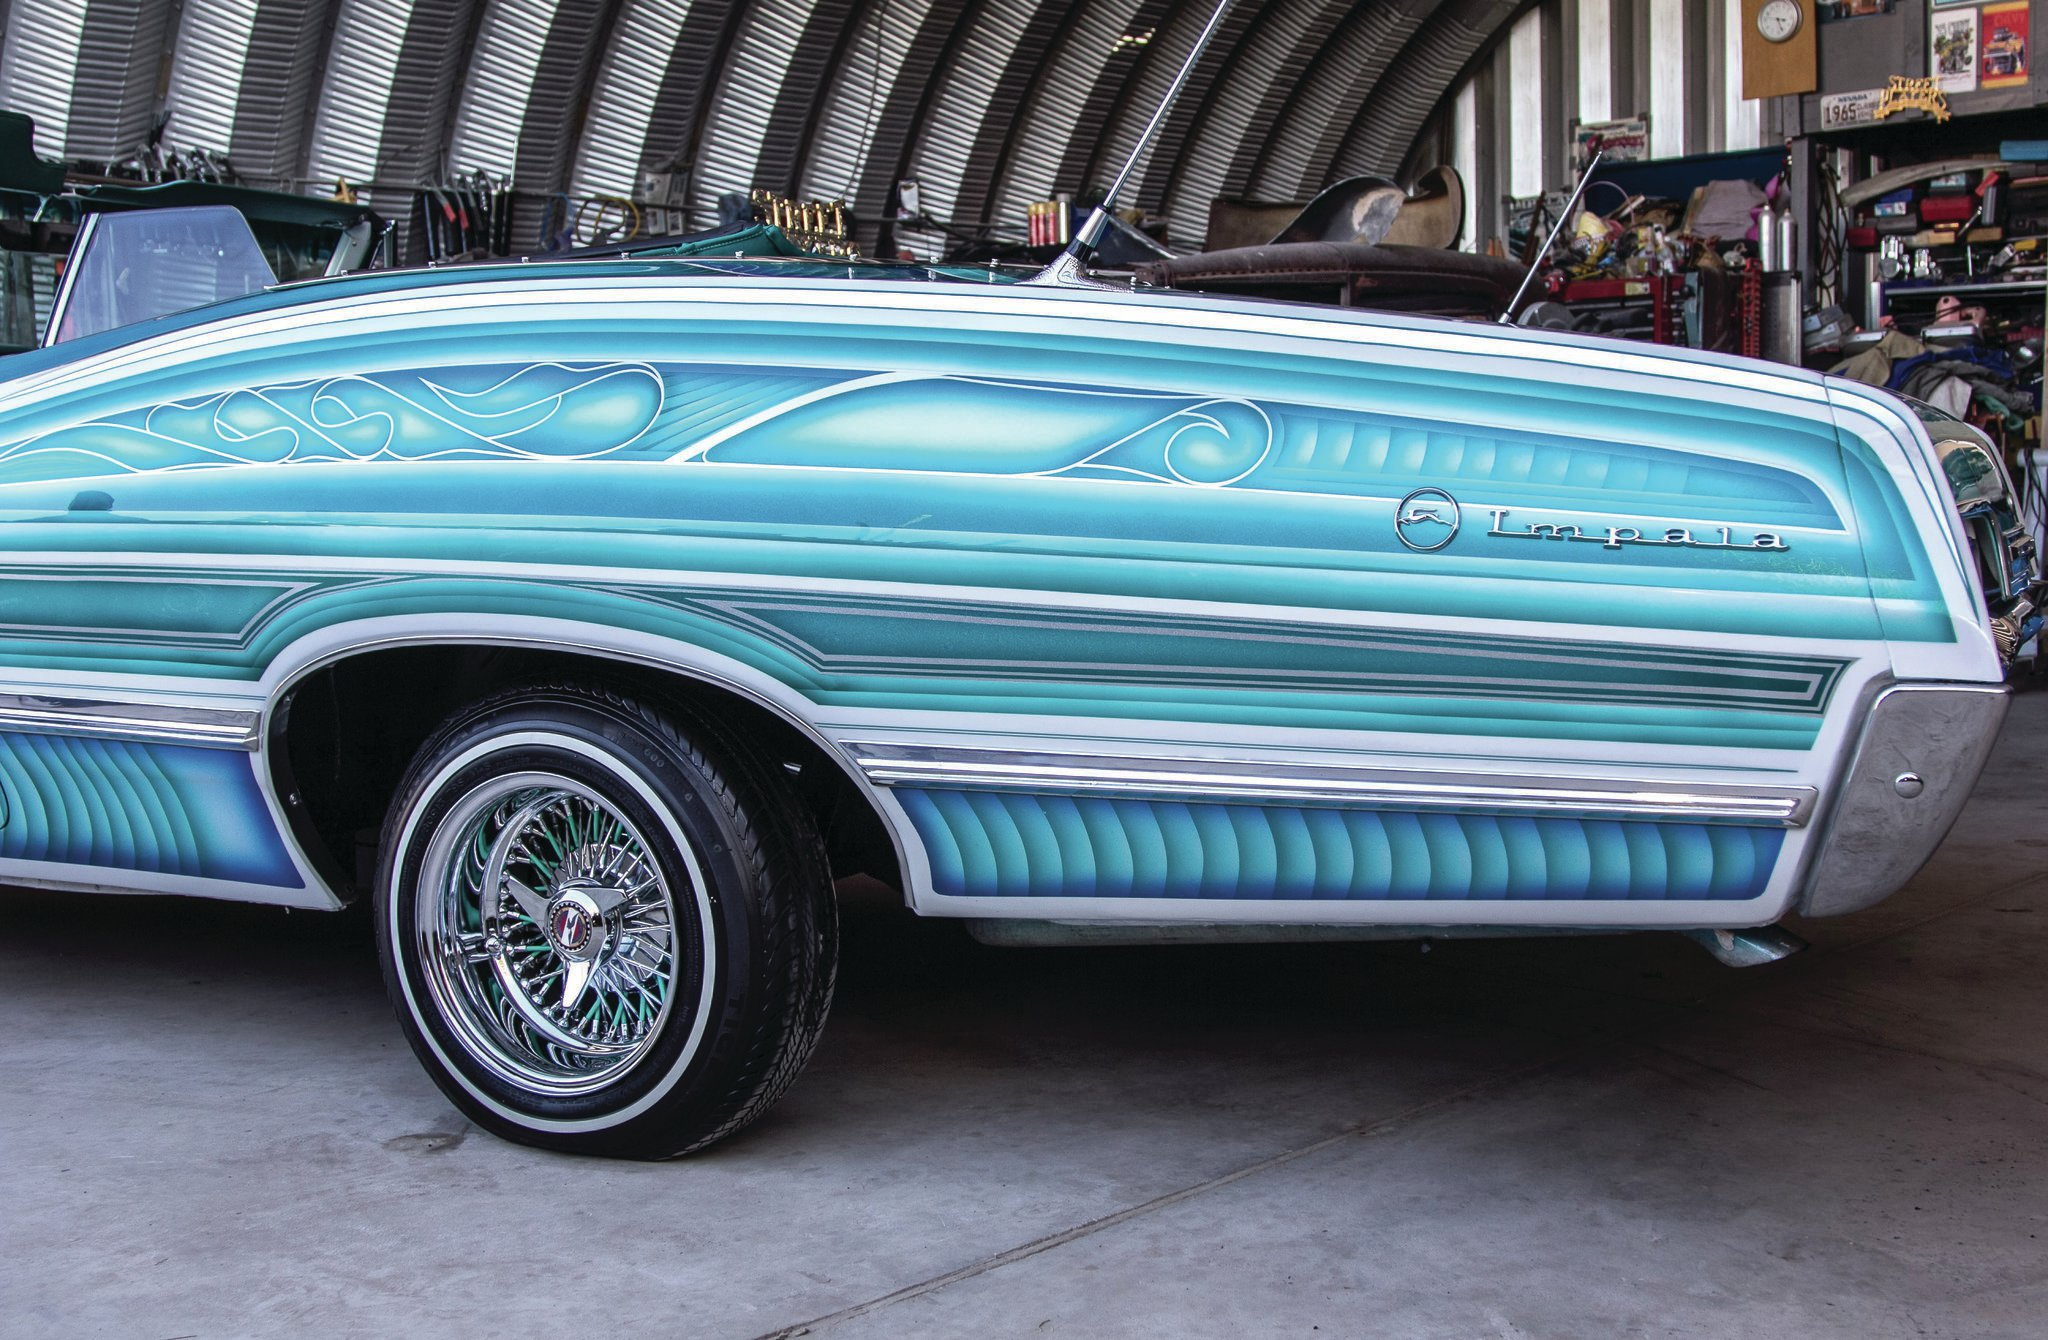 1967 Chevrolet Impala Convertible A 67 Street Player In